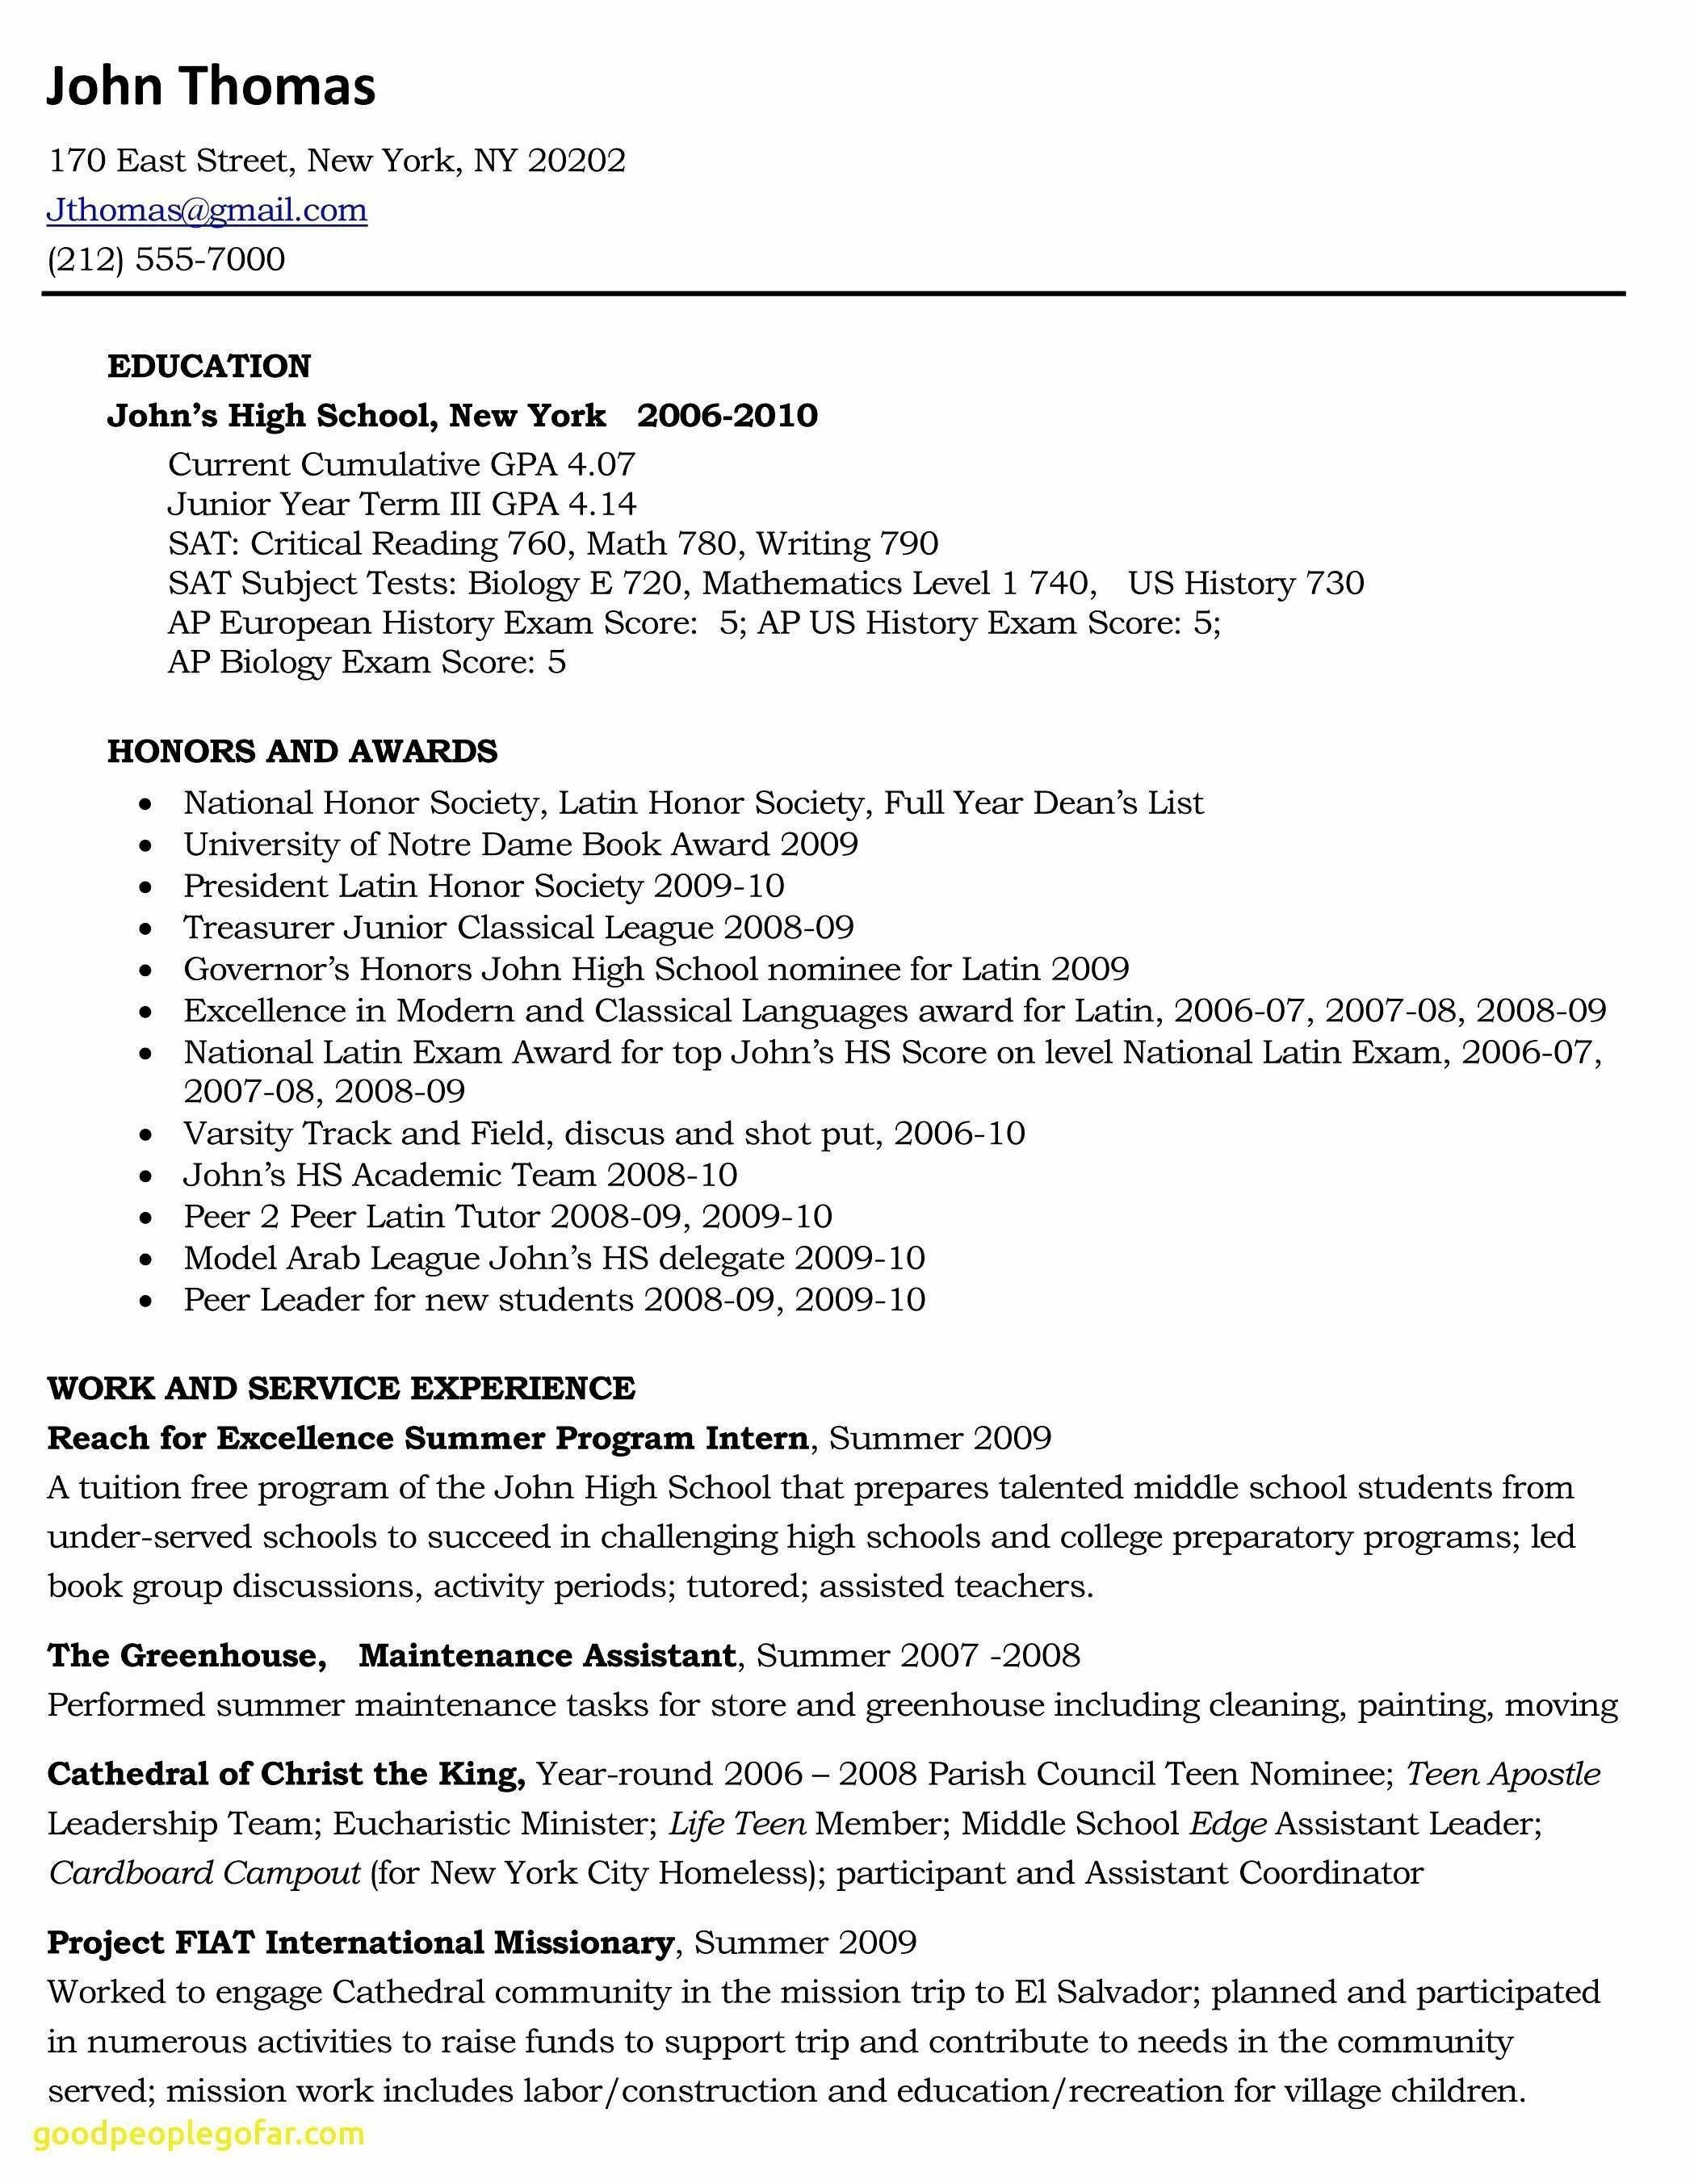 making a good resume example-How To Do A Good Resume Save Make Free Resume Best Fresh Entry Level Resume Sorority Resume 0d 19-k